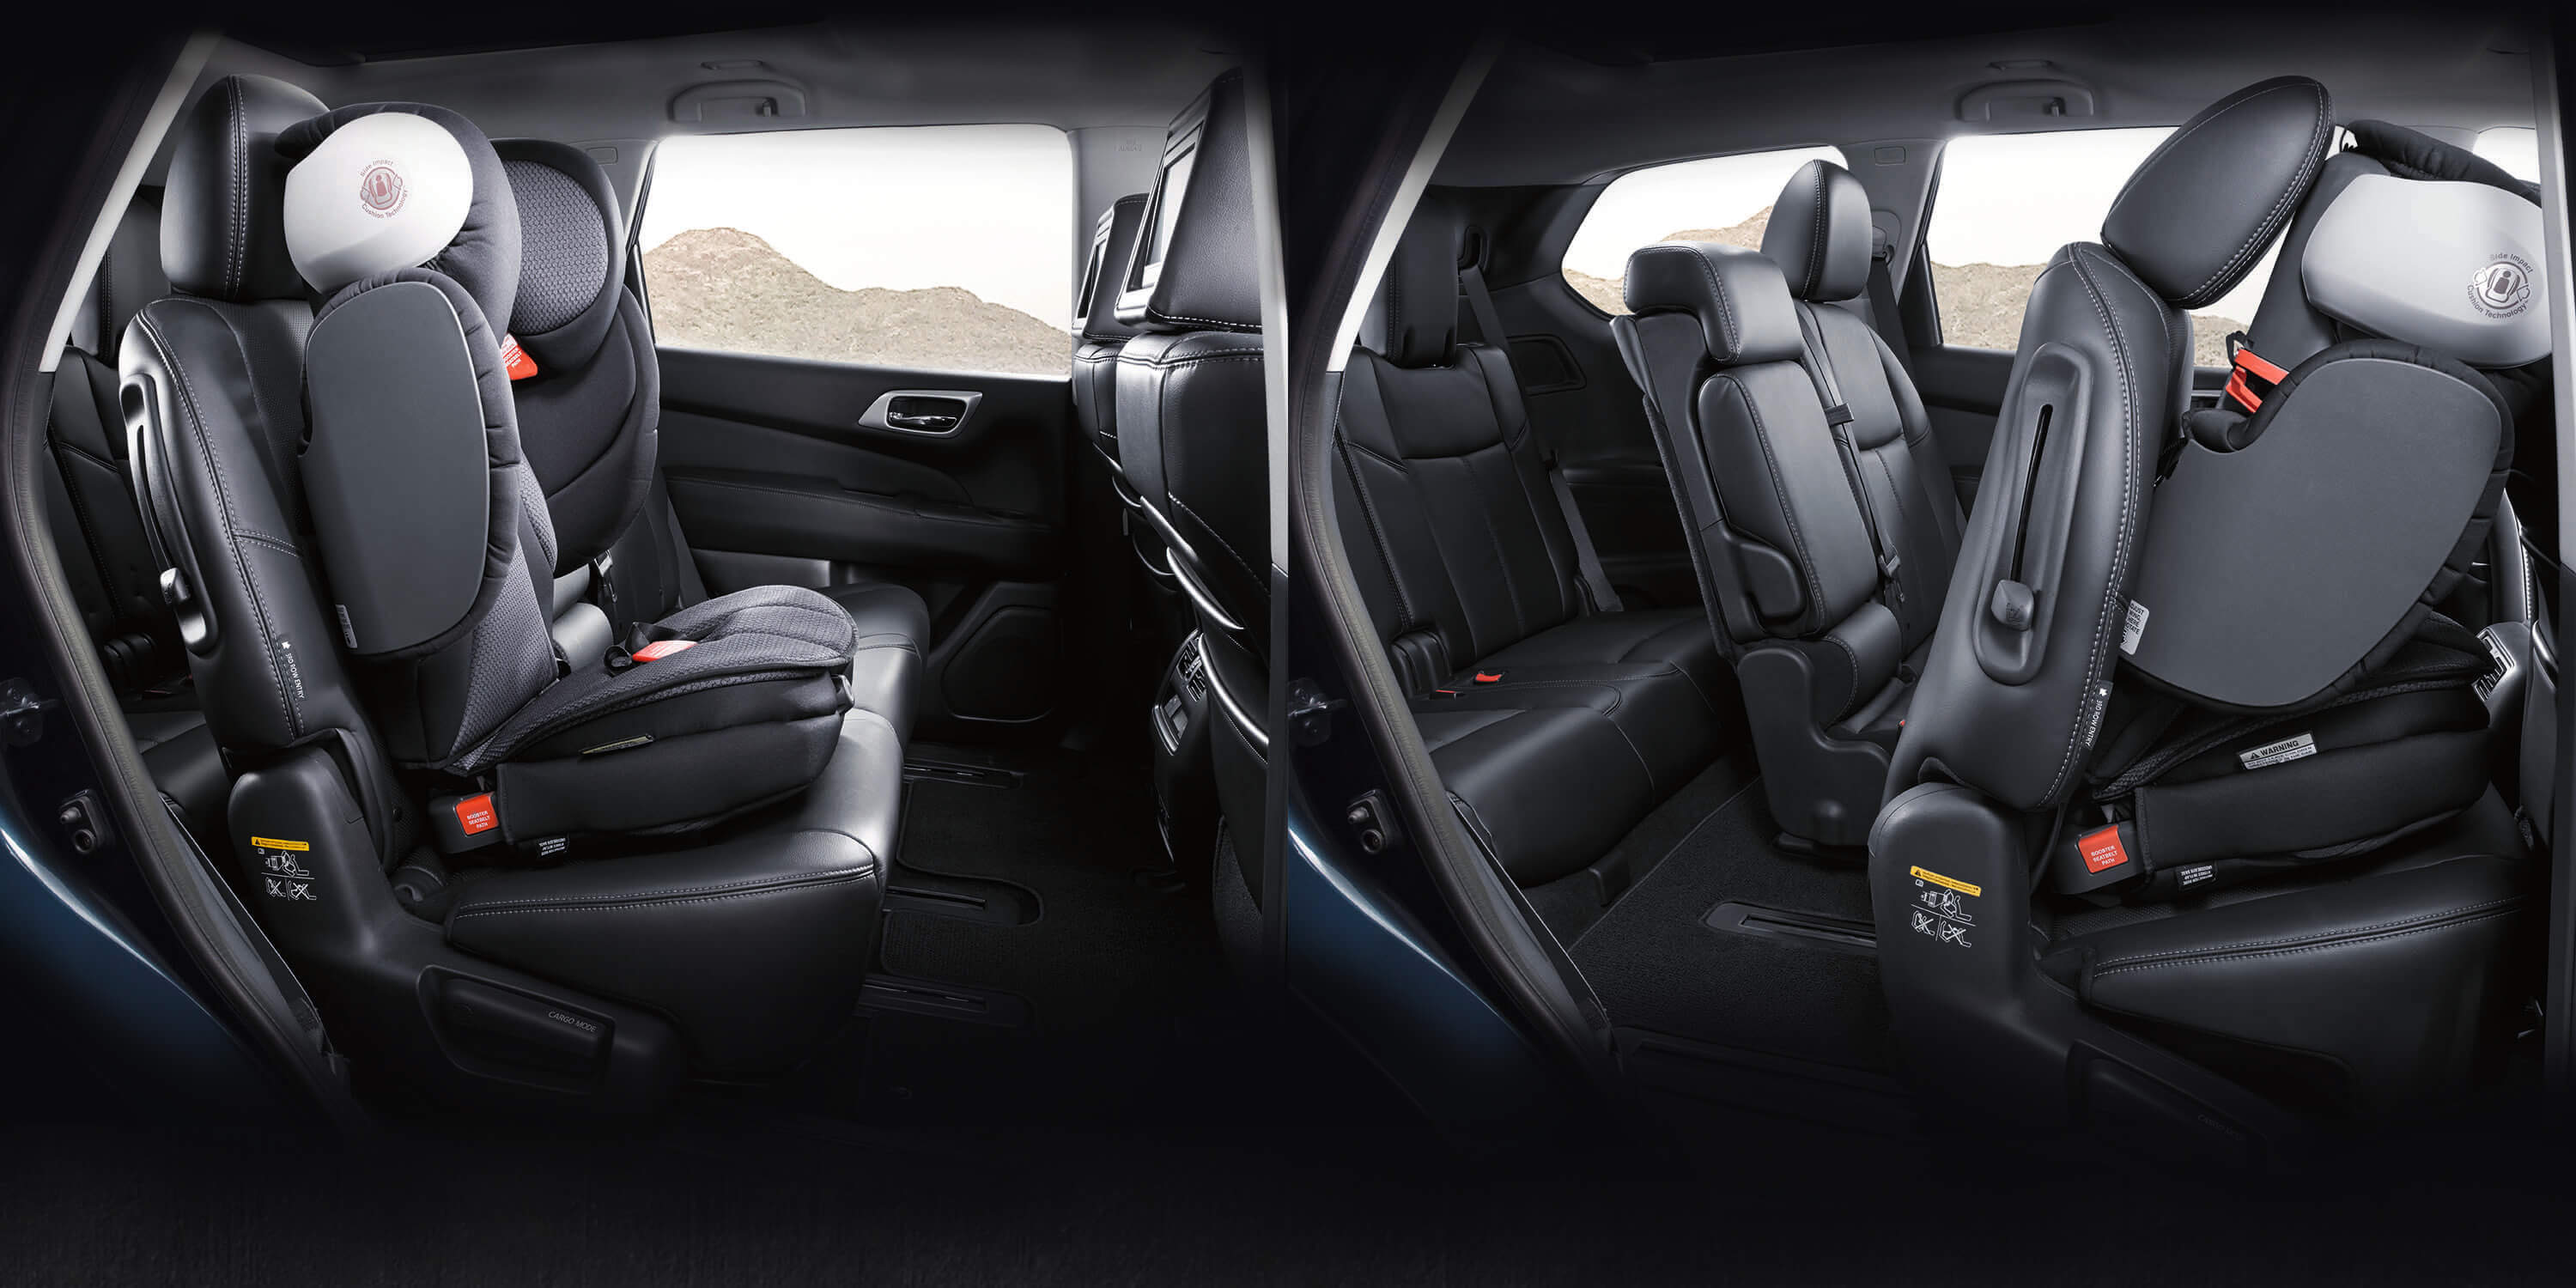 Nissan Pathfinder rear seat folded and unfolded